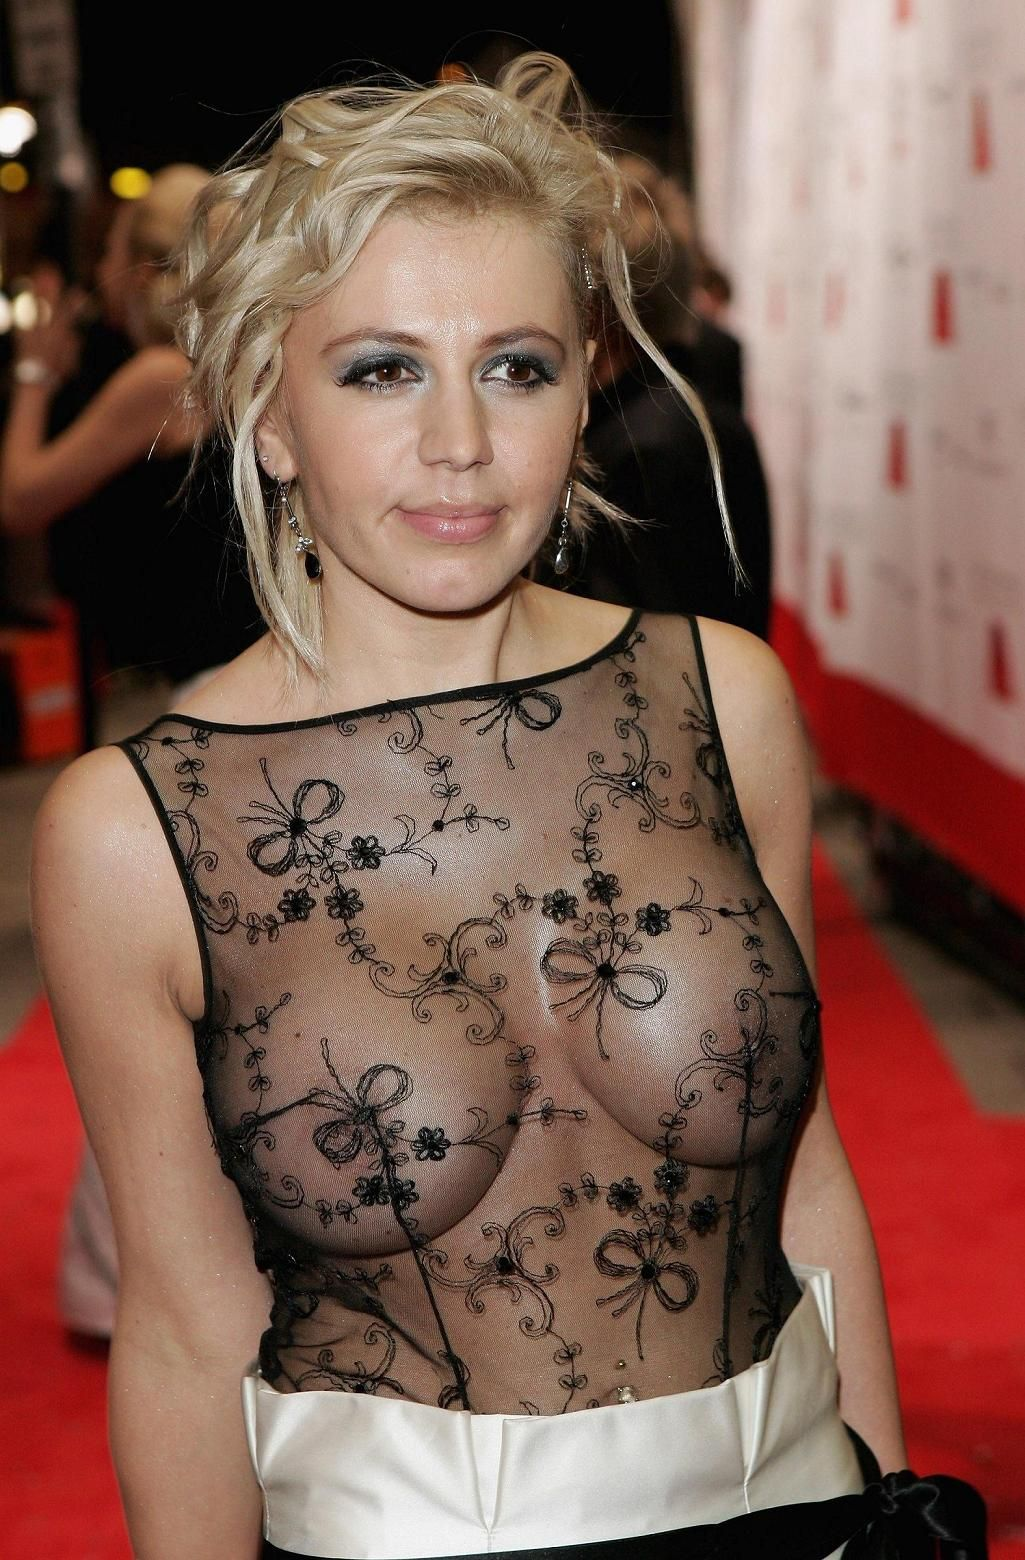 Davorka Tovilo showing her big boobs in her transparent dress in a function